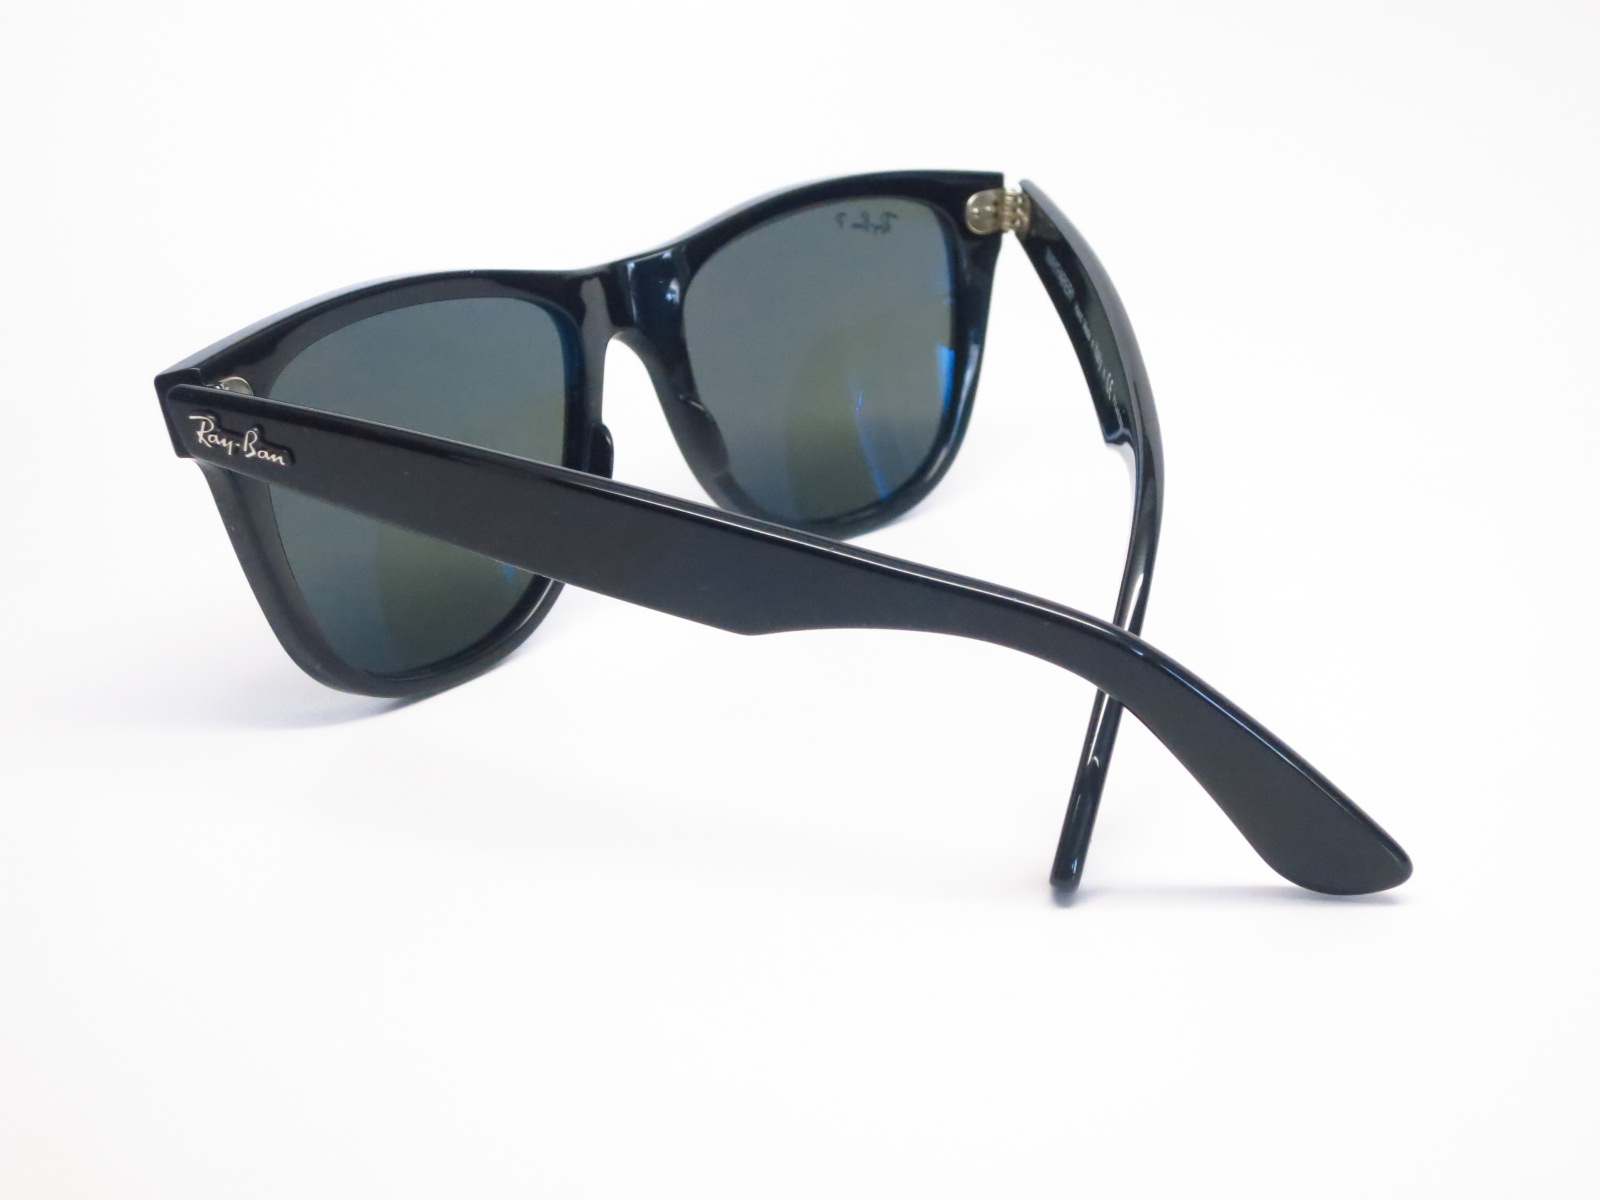 rb2140 polarized tz9s  Ray-Ban RB 2140 Original Wayfarer 901/58 Shiny Black Polarized Sunglasses